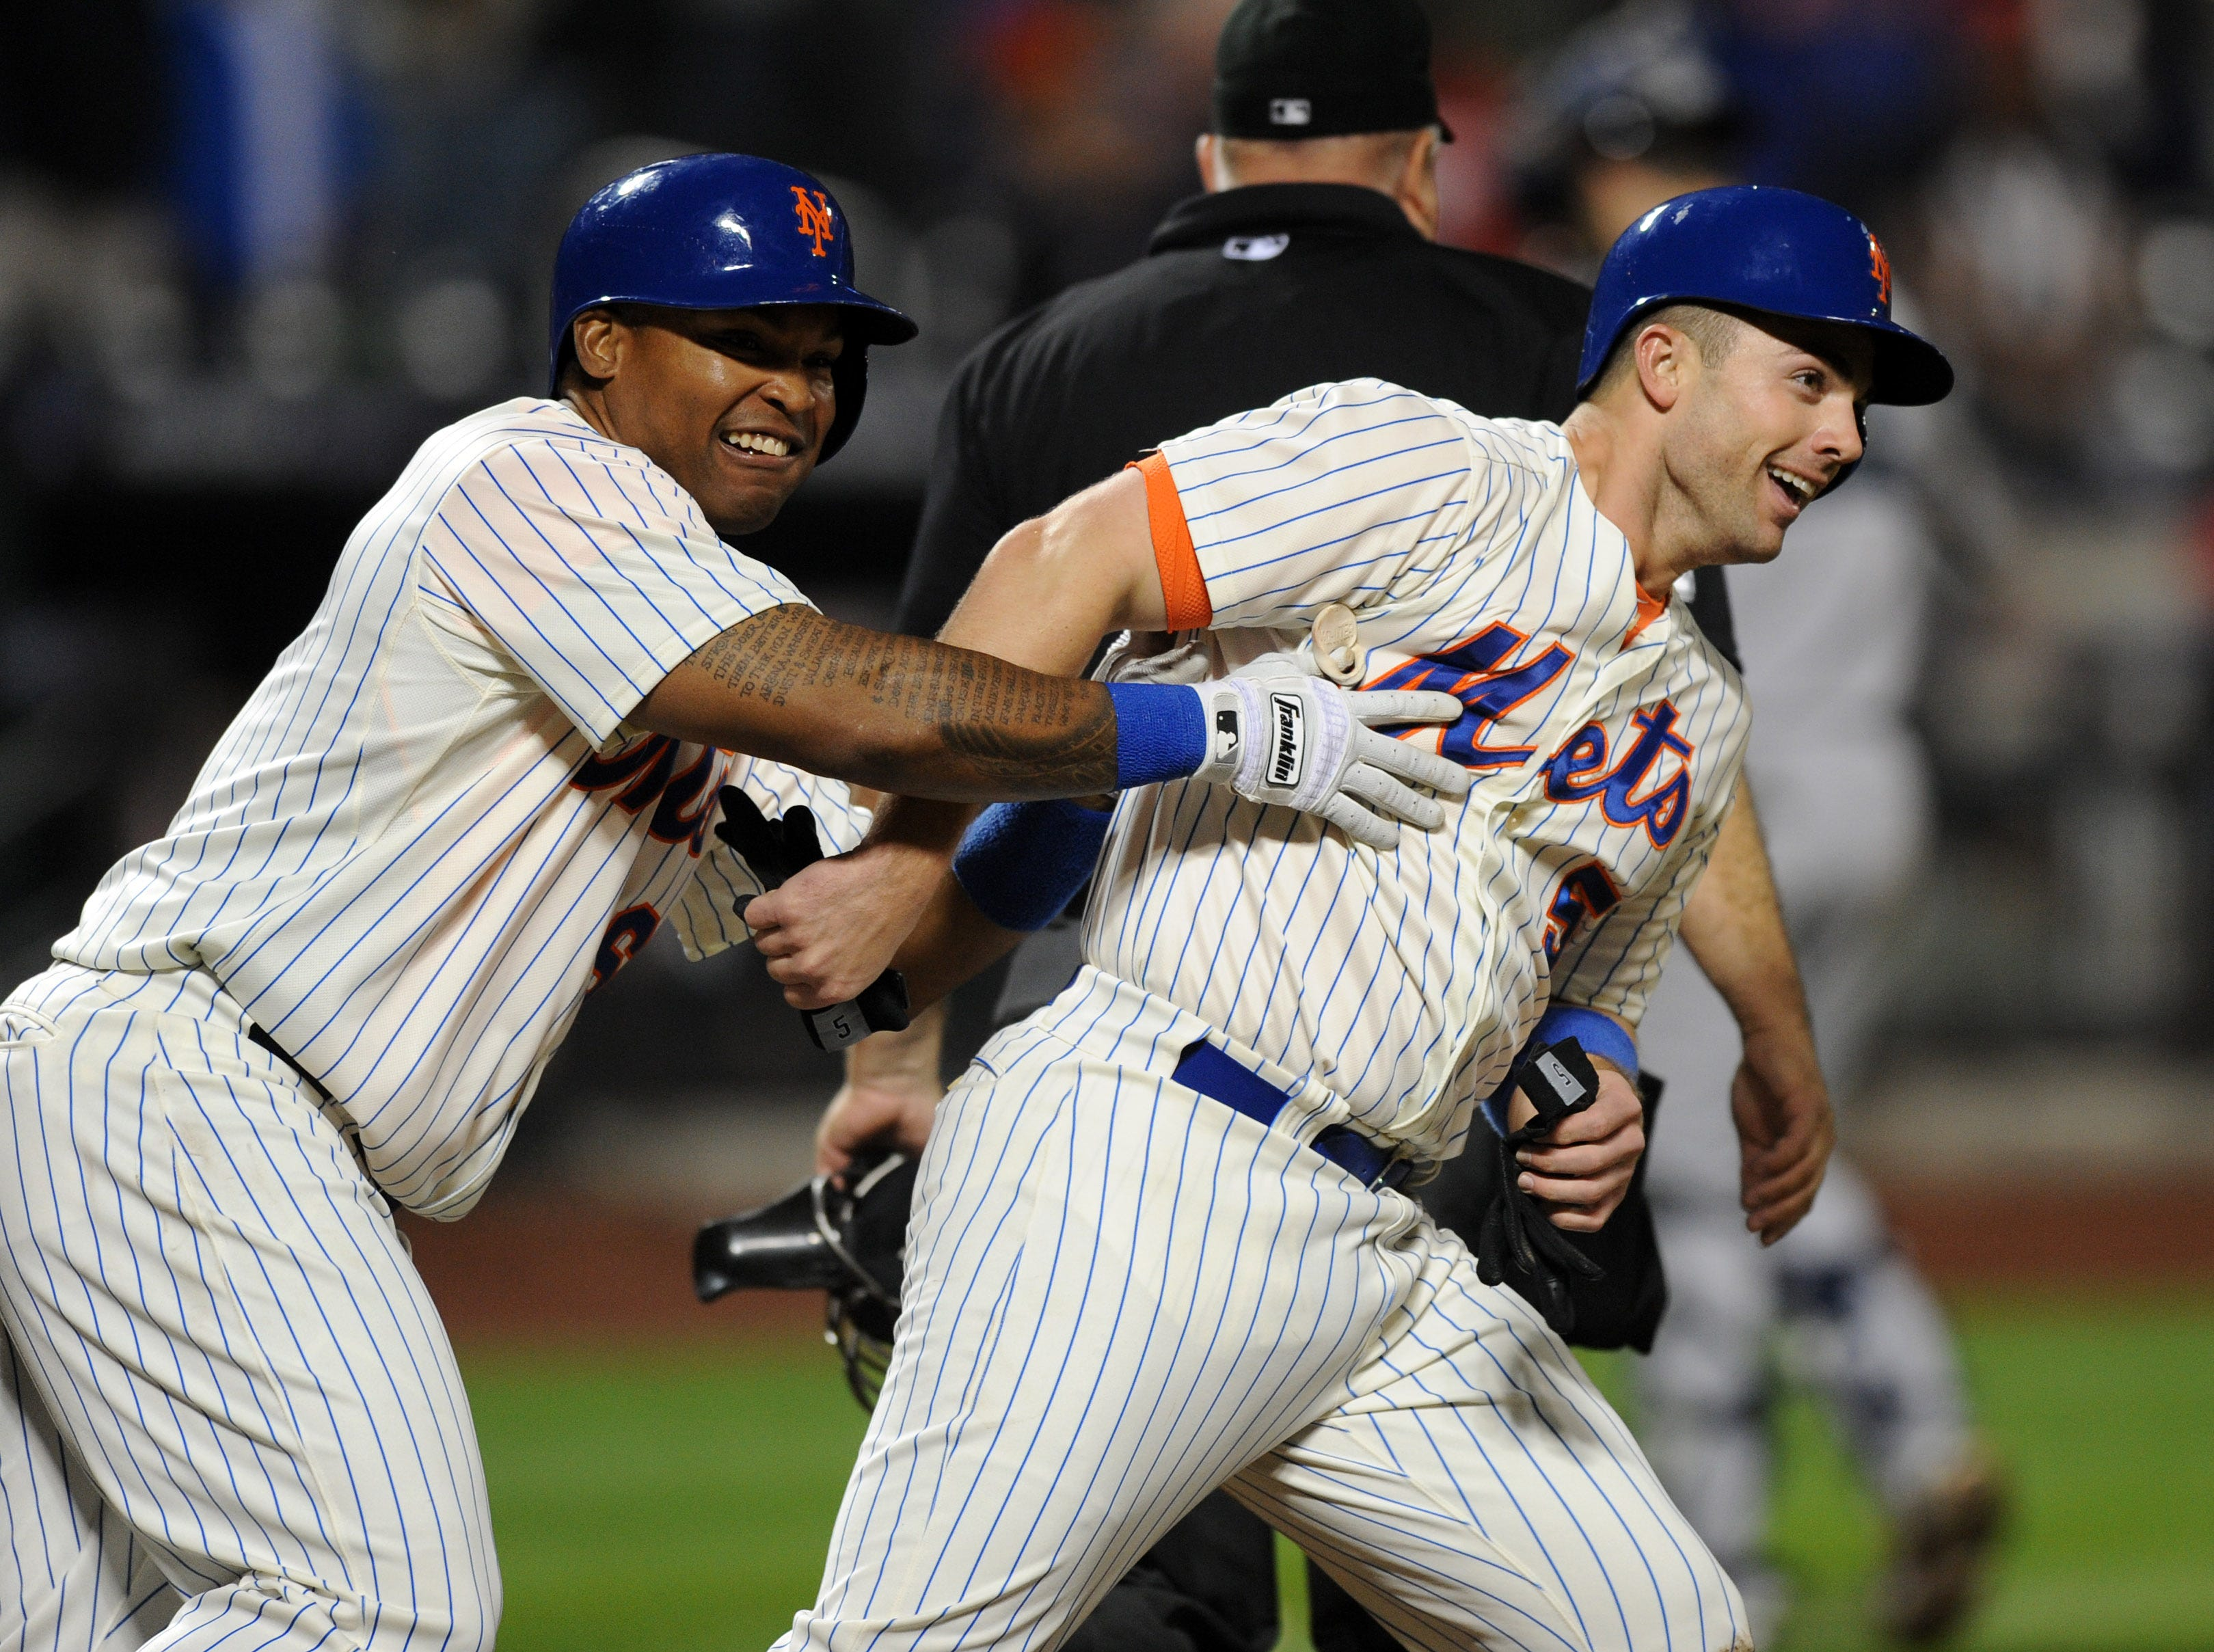 2013: New York Mets David Wright is congratulated by teammates after scoring the winning run of Tuesday's interleague game against the New York Yankees.